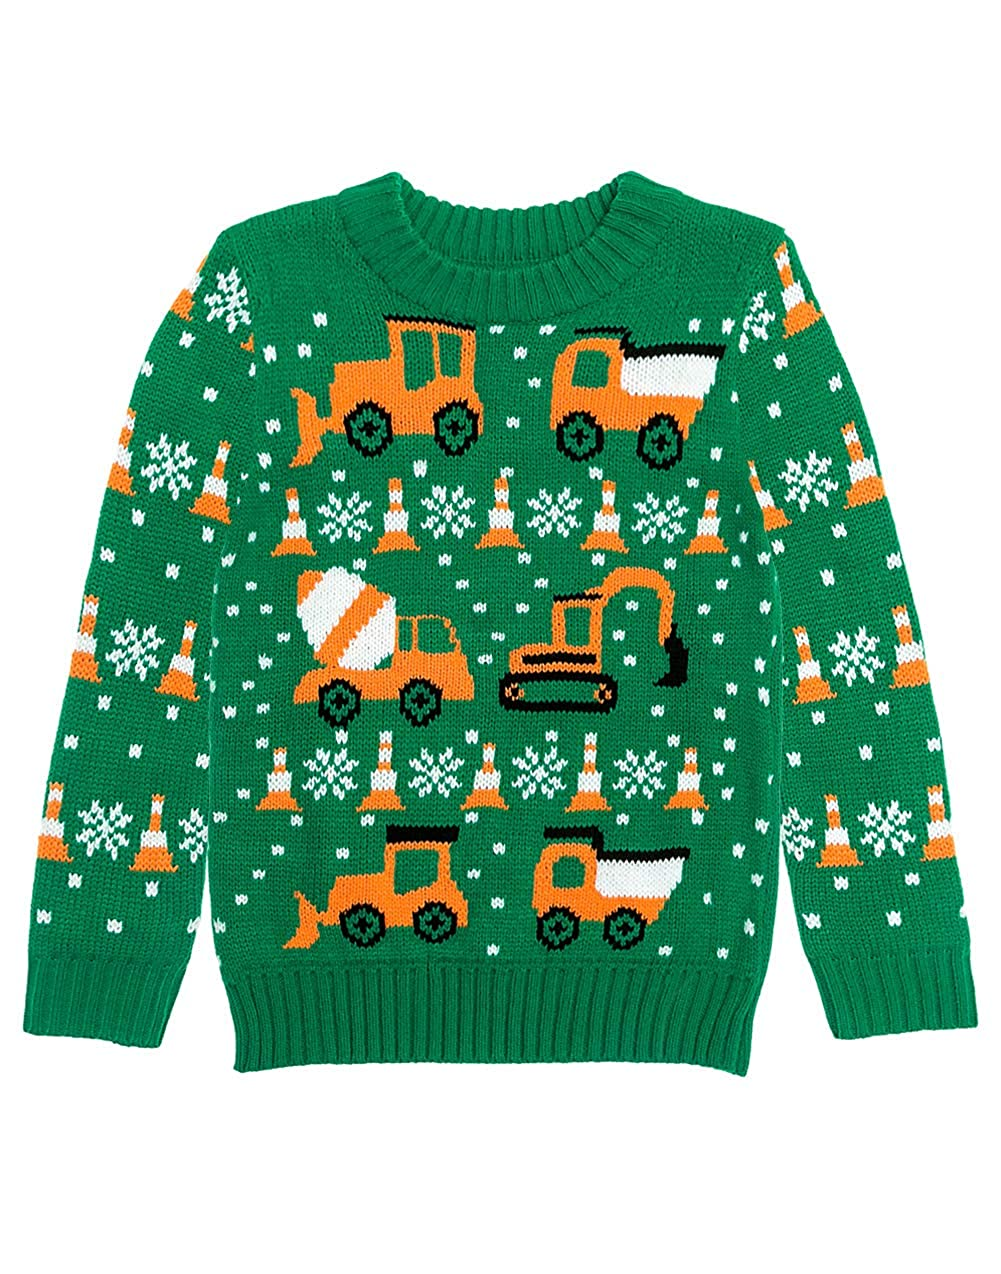 Tractors & Bulldozers Ugly Christmas Sweater Holiday Boys Toddler Sweater GaMPt0Mg5d